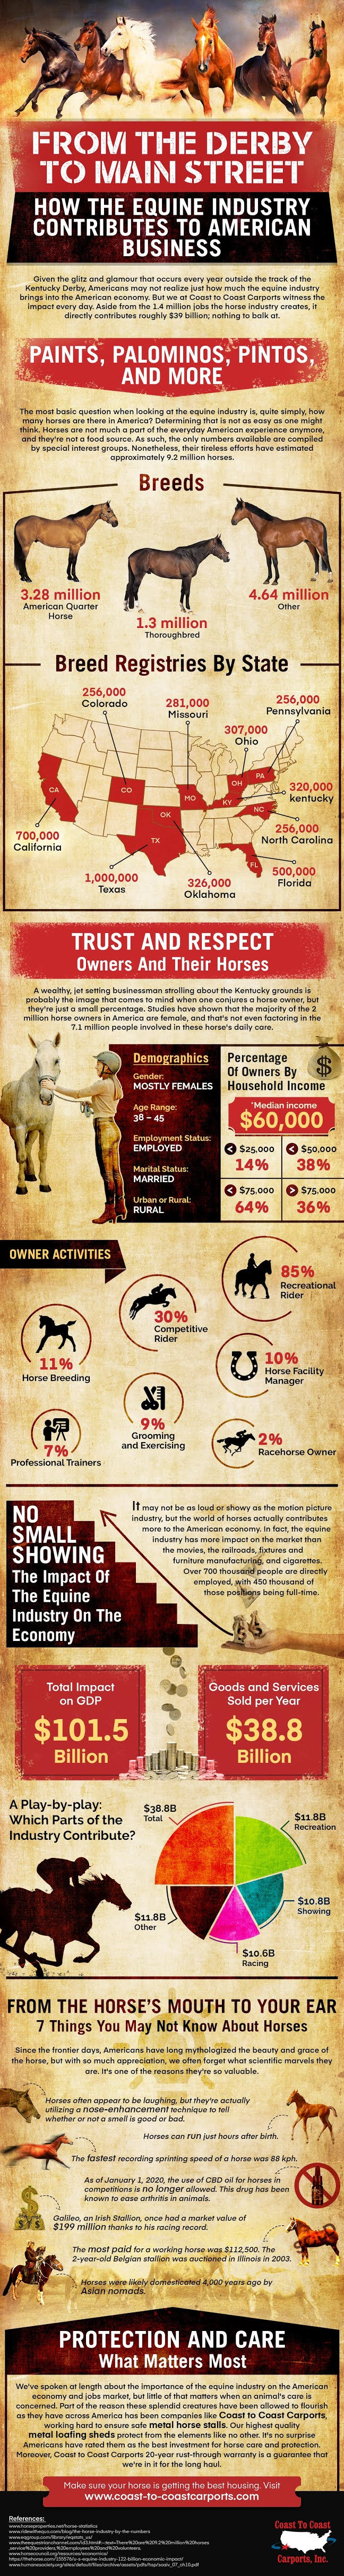 From the Derby to Main Street: How the Equine Industry Contributes to American Business #infographic #Derby #infographics